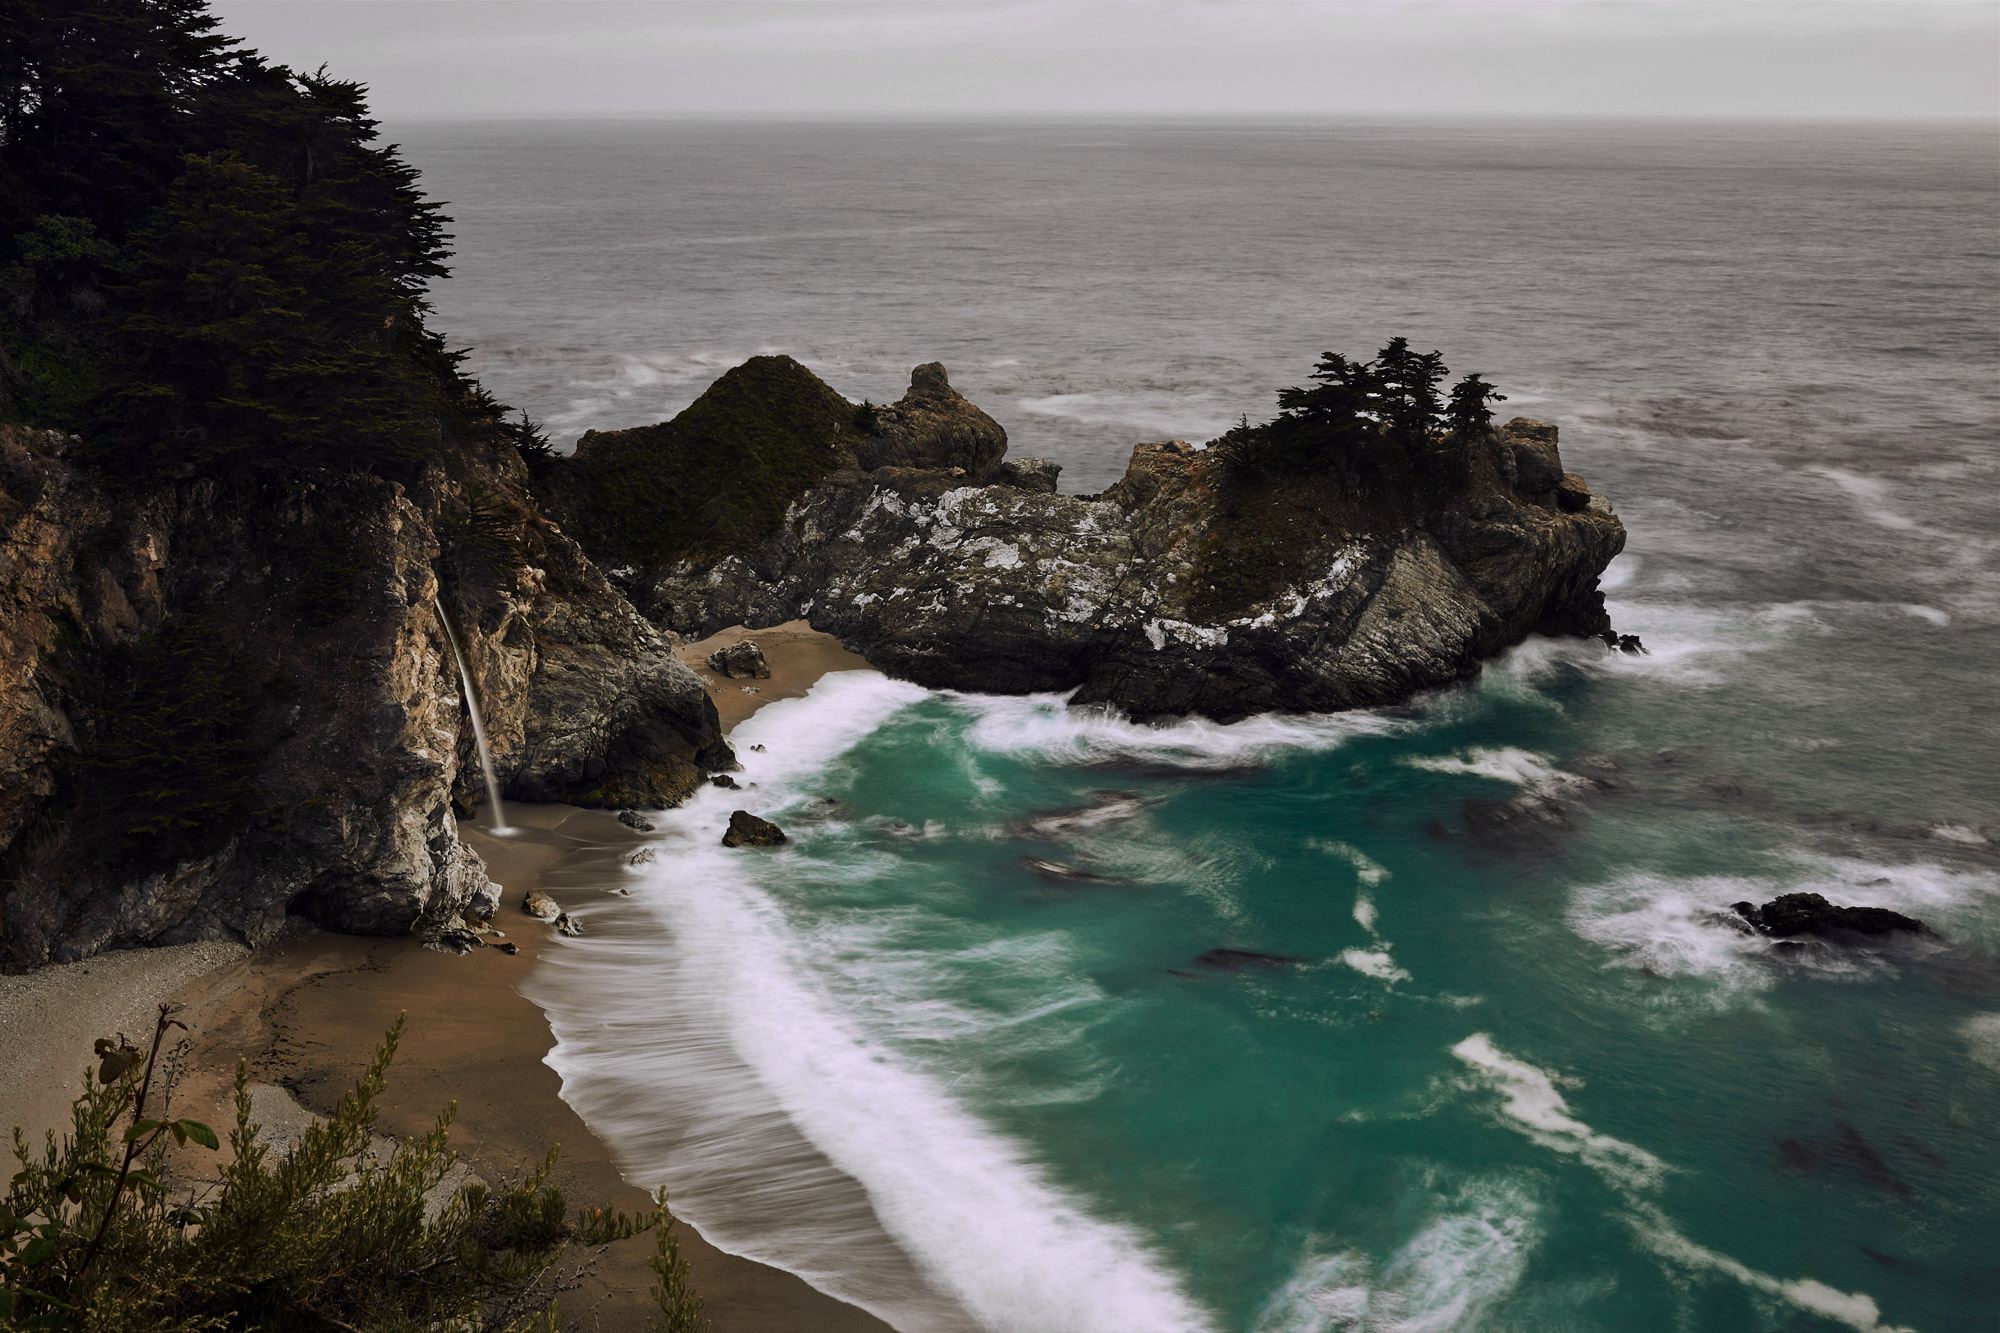 McWay Falls - Big Sur, California - Stephen Denton Photography - Phoenix AZ Commercial Photographer